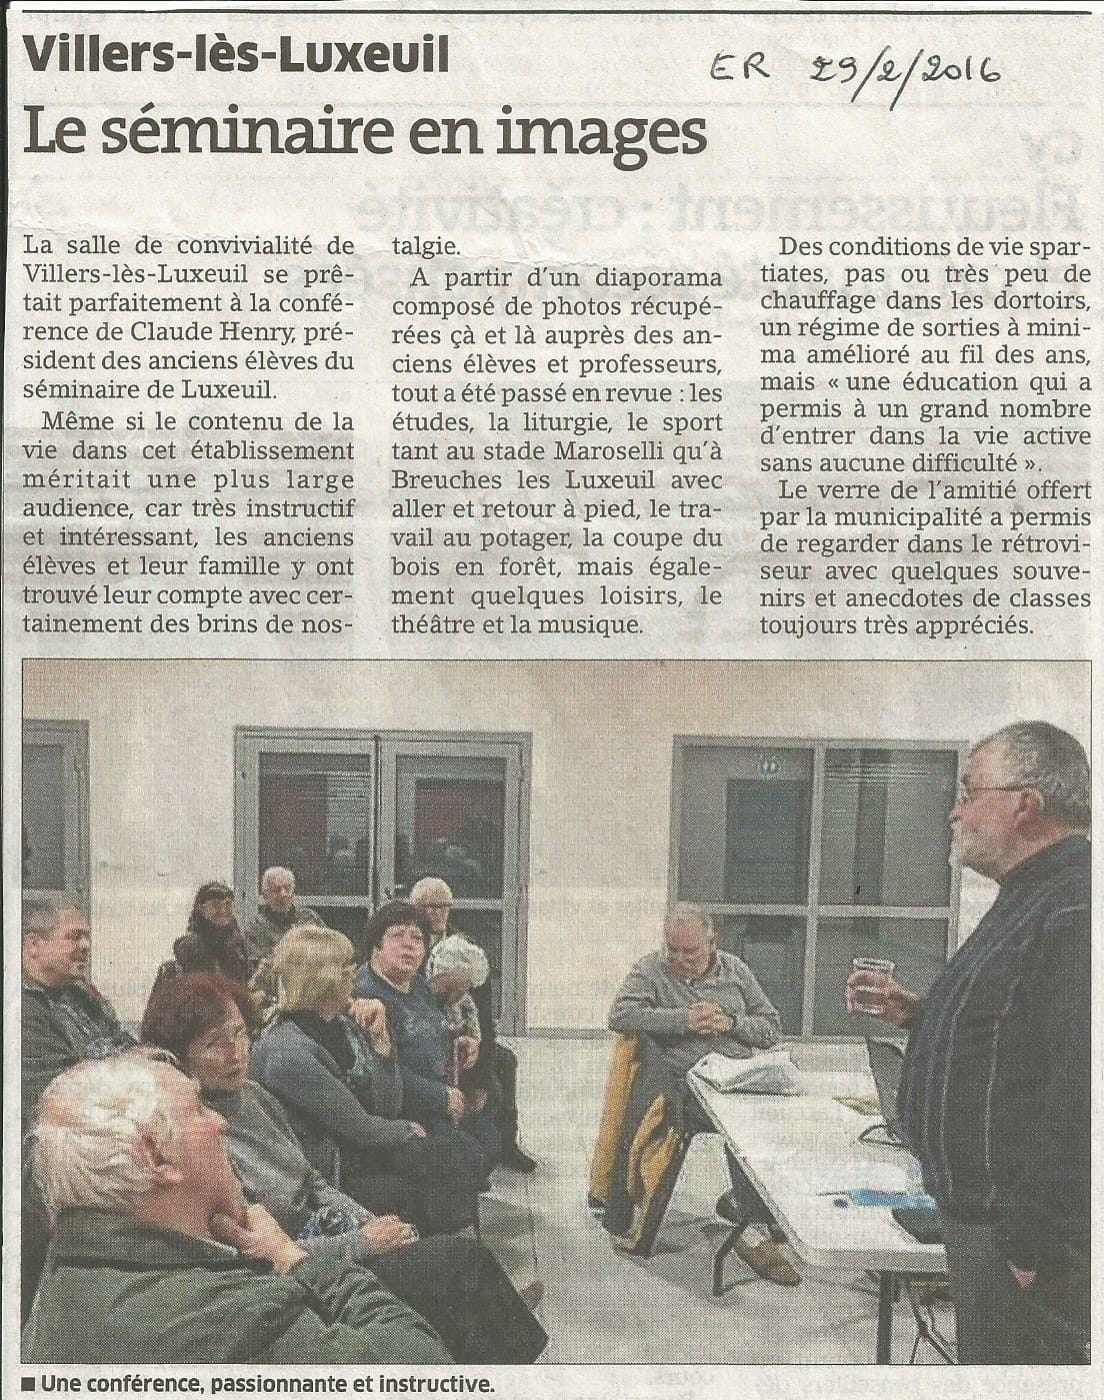 https://www.villers-les-luxeuil.com/projets/villers/files/images/2016_Mairie/Presse/2016_02_29_Seminaire_1.jpg